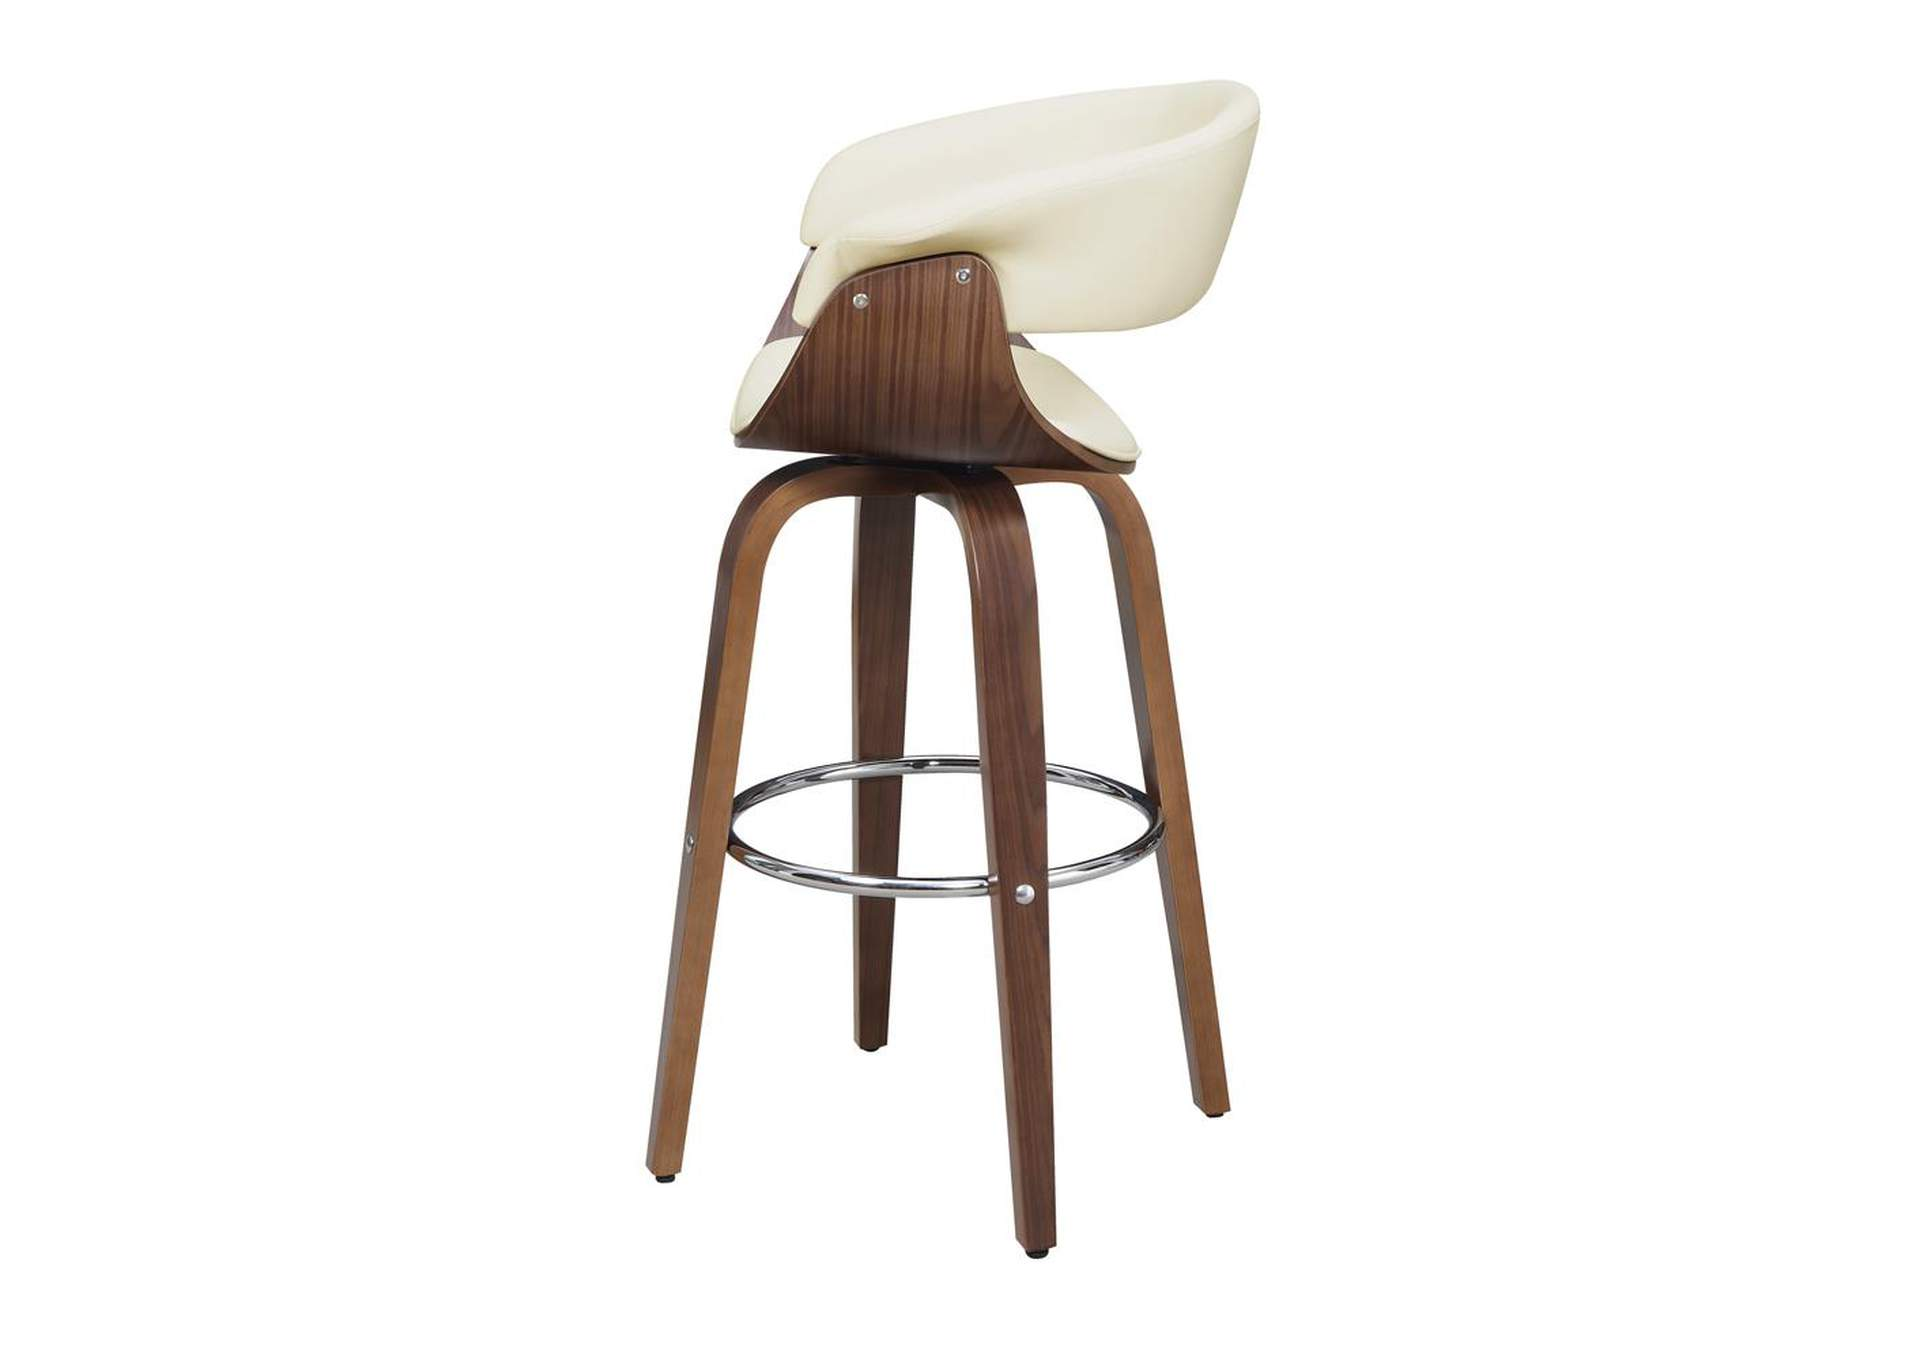 Upholstered Swivel Bar Stool Walnut And Ecru,Coaster Furniture